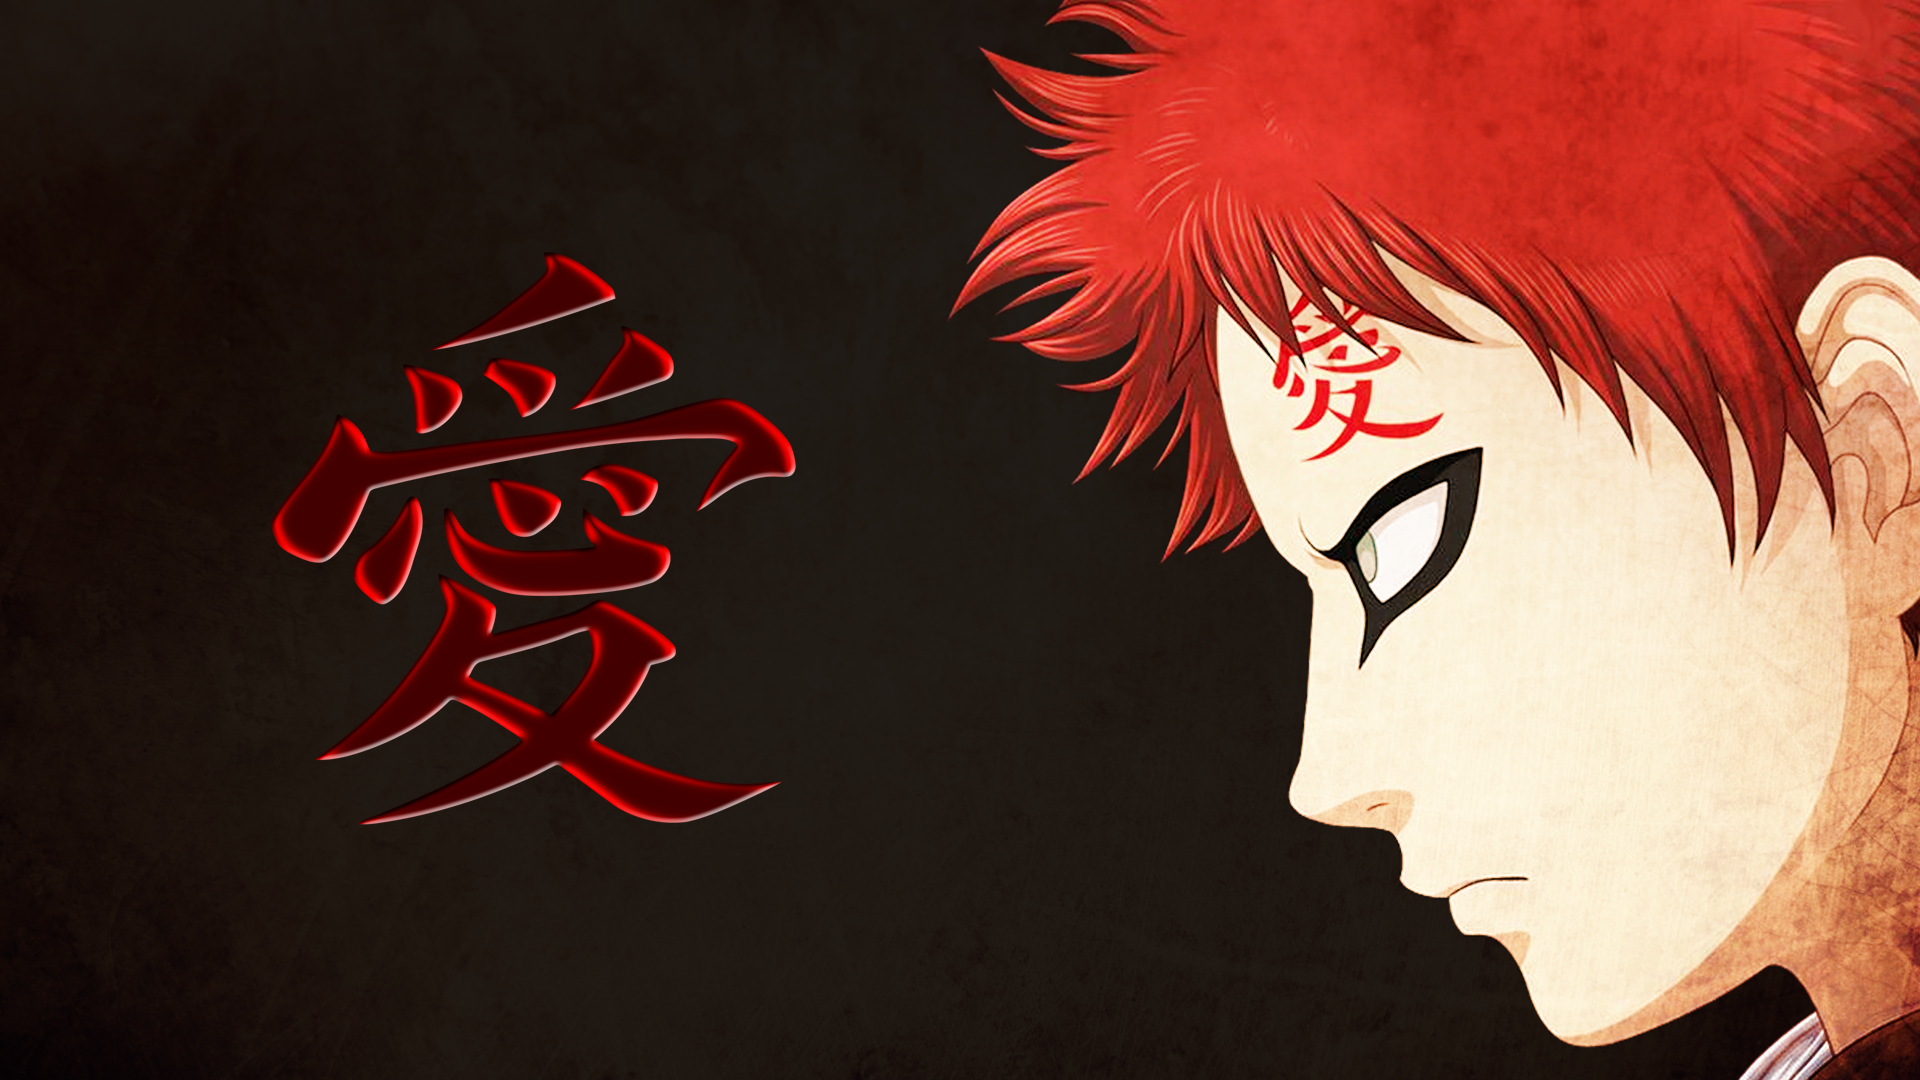 Gaara wallpaper 1 by Jackydile 1920x1080